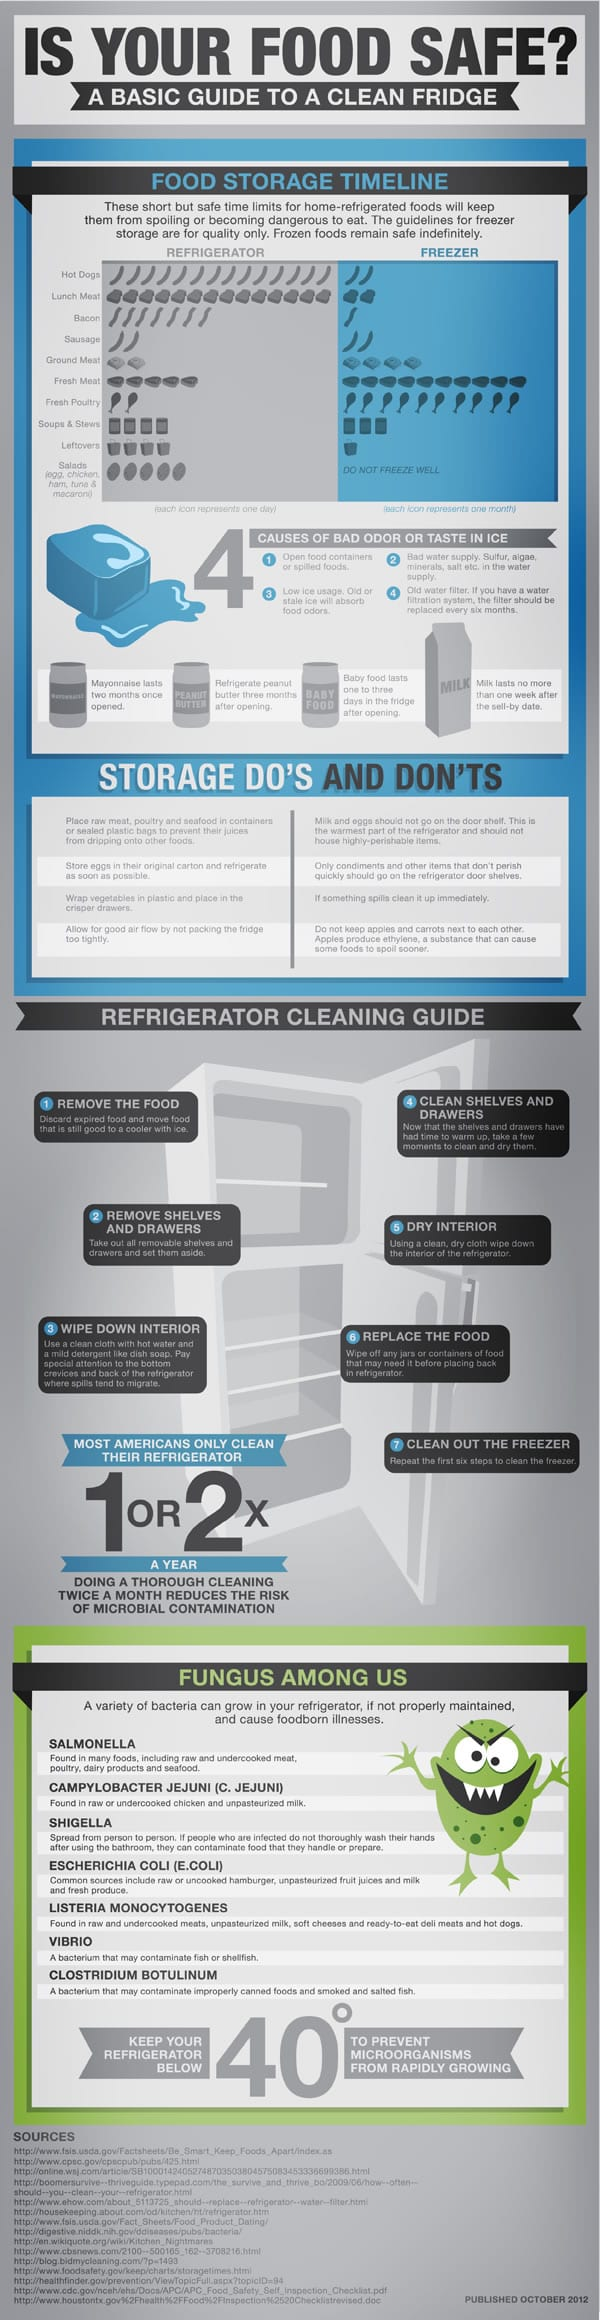 guide to a clean fridge